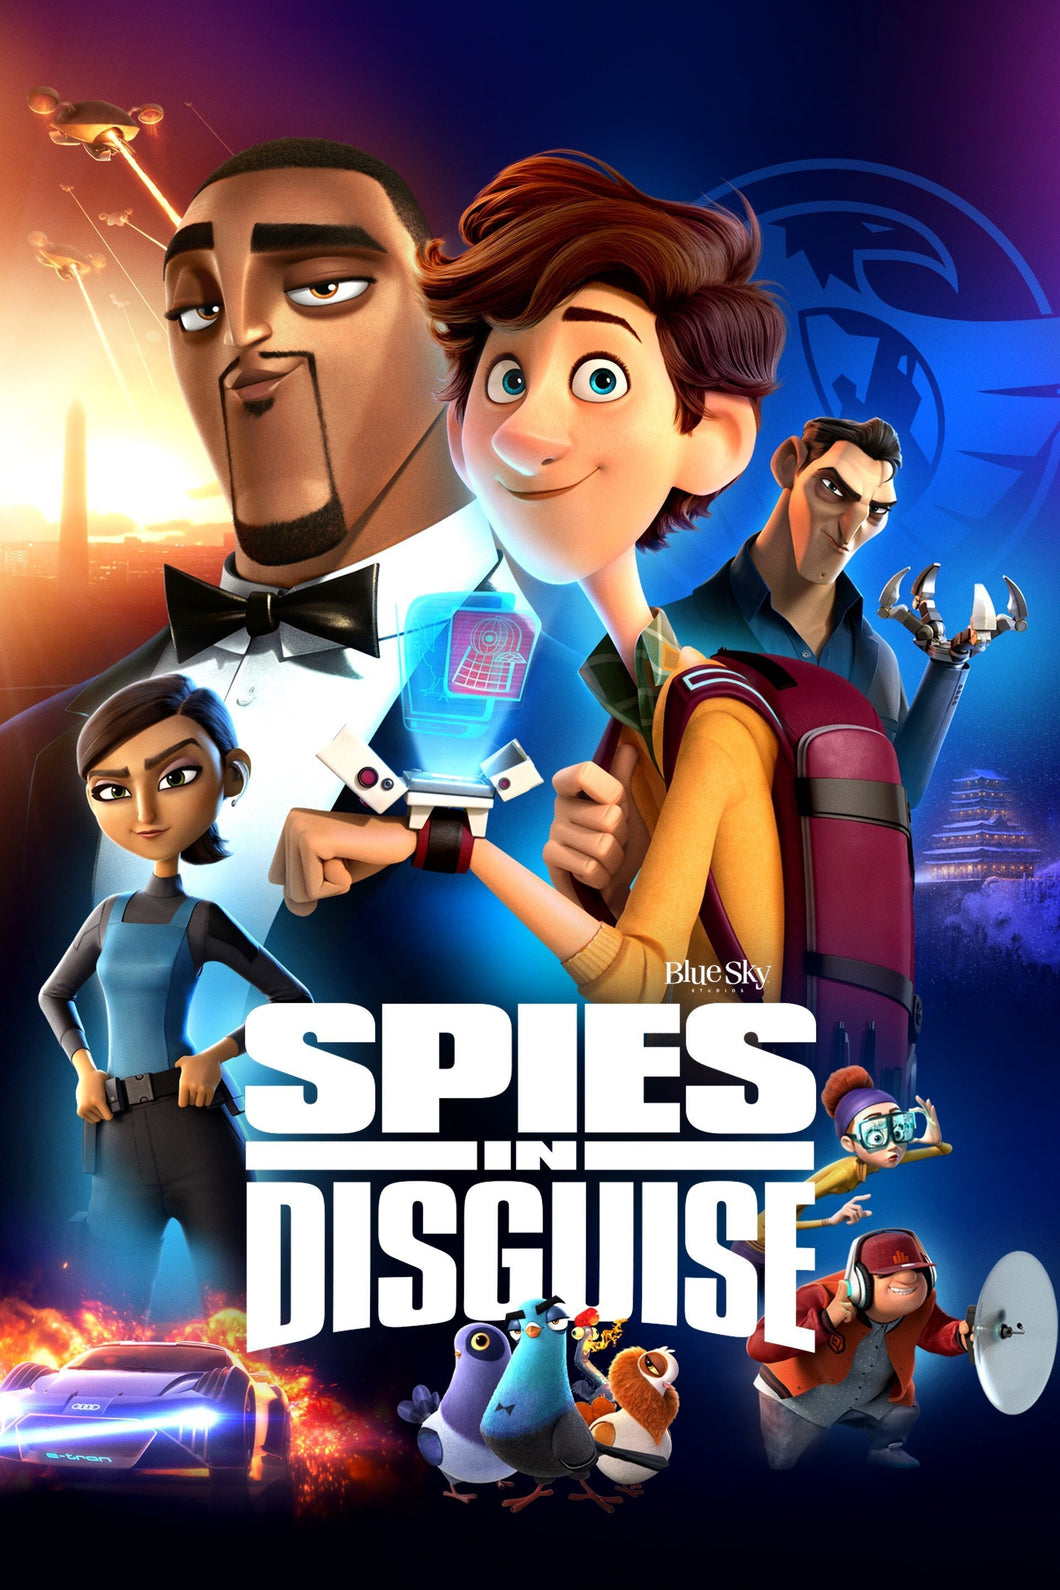 Spies in Disguise | HD Movies Anywhere Code Ports to Vudu, iTunes, GP - Movie Sometimes